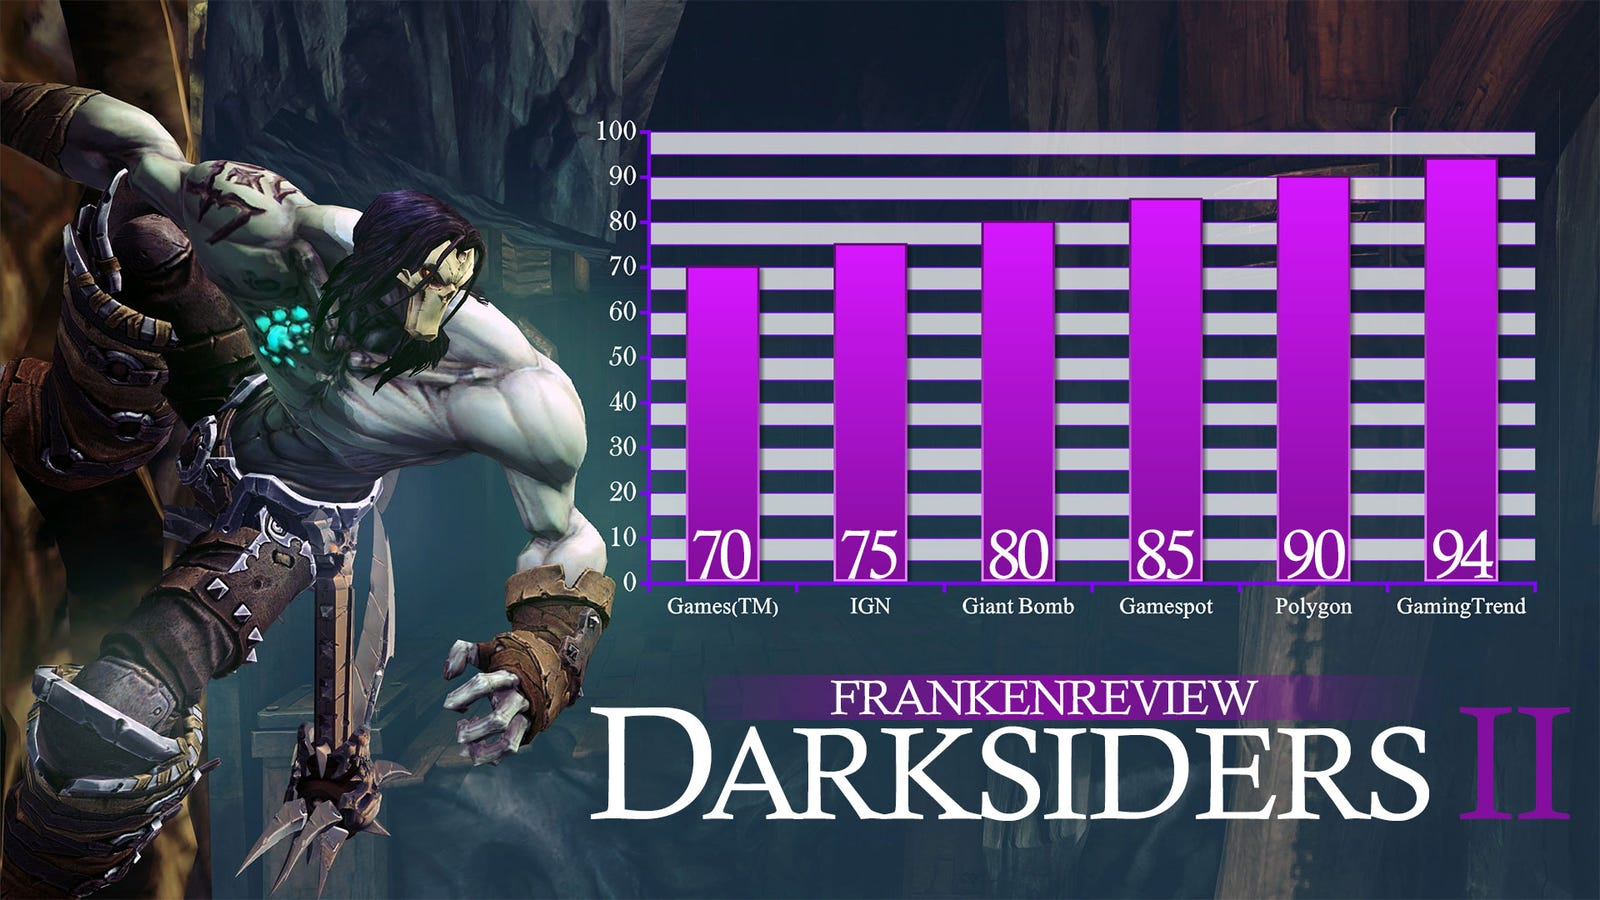 death claims the souls of seven darksiders ii game reviewers